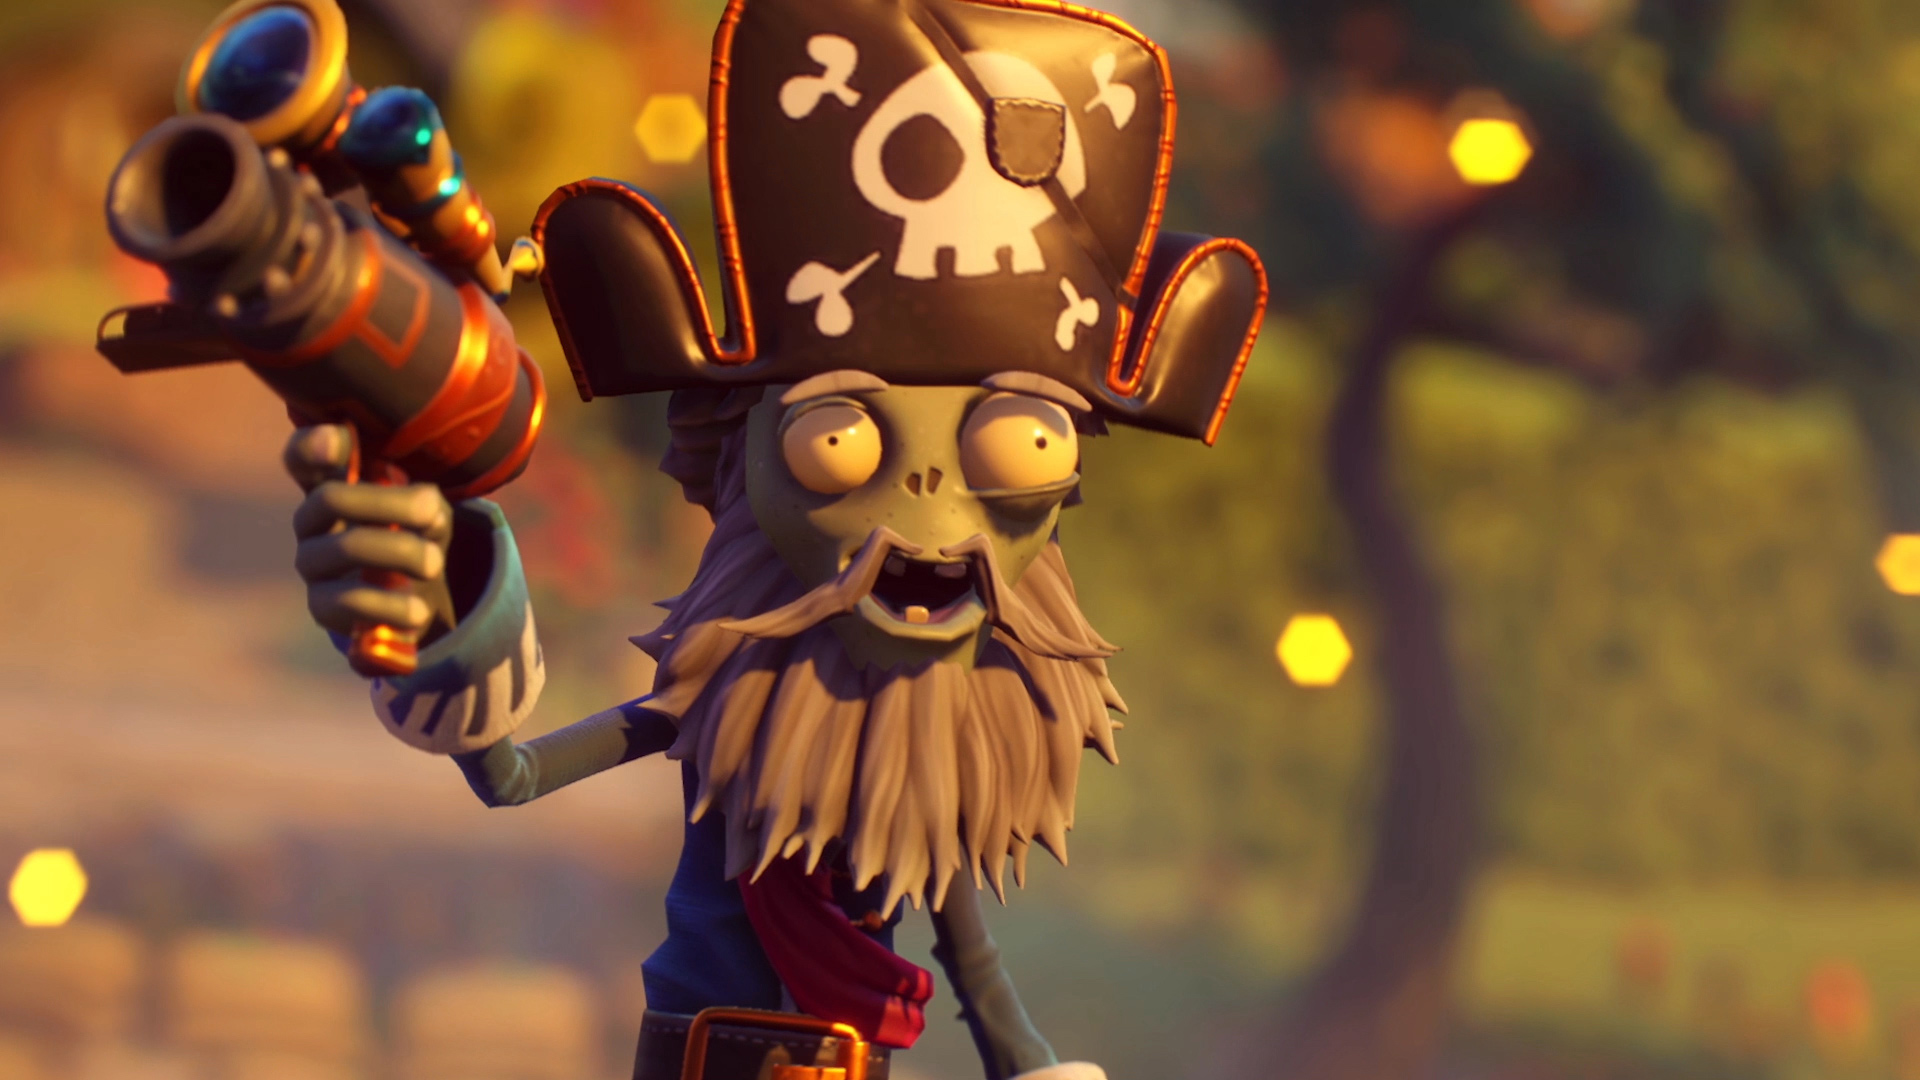 Plants vs zombies garden warfare 2 reviews reviewers think this game is going to grow on you voltagebd Image collections